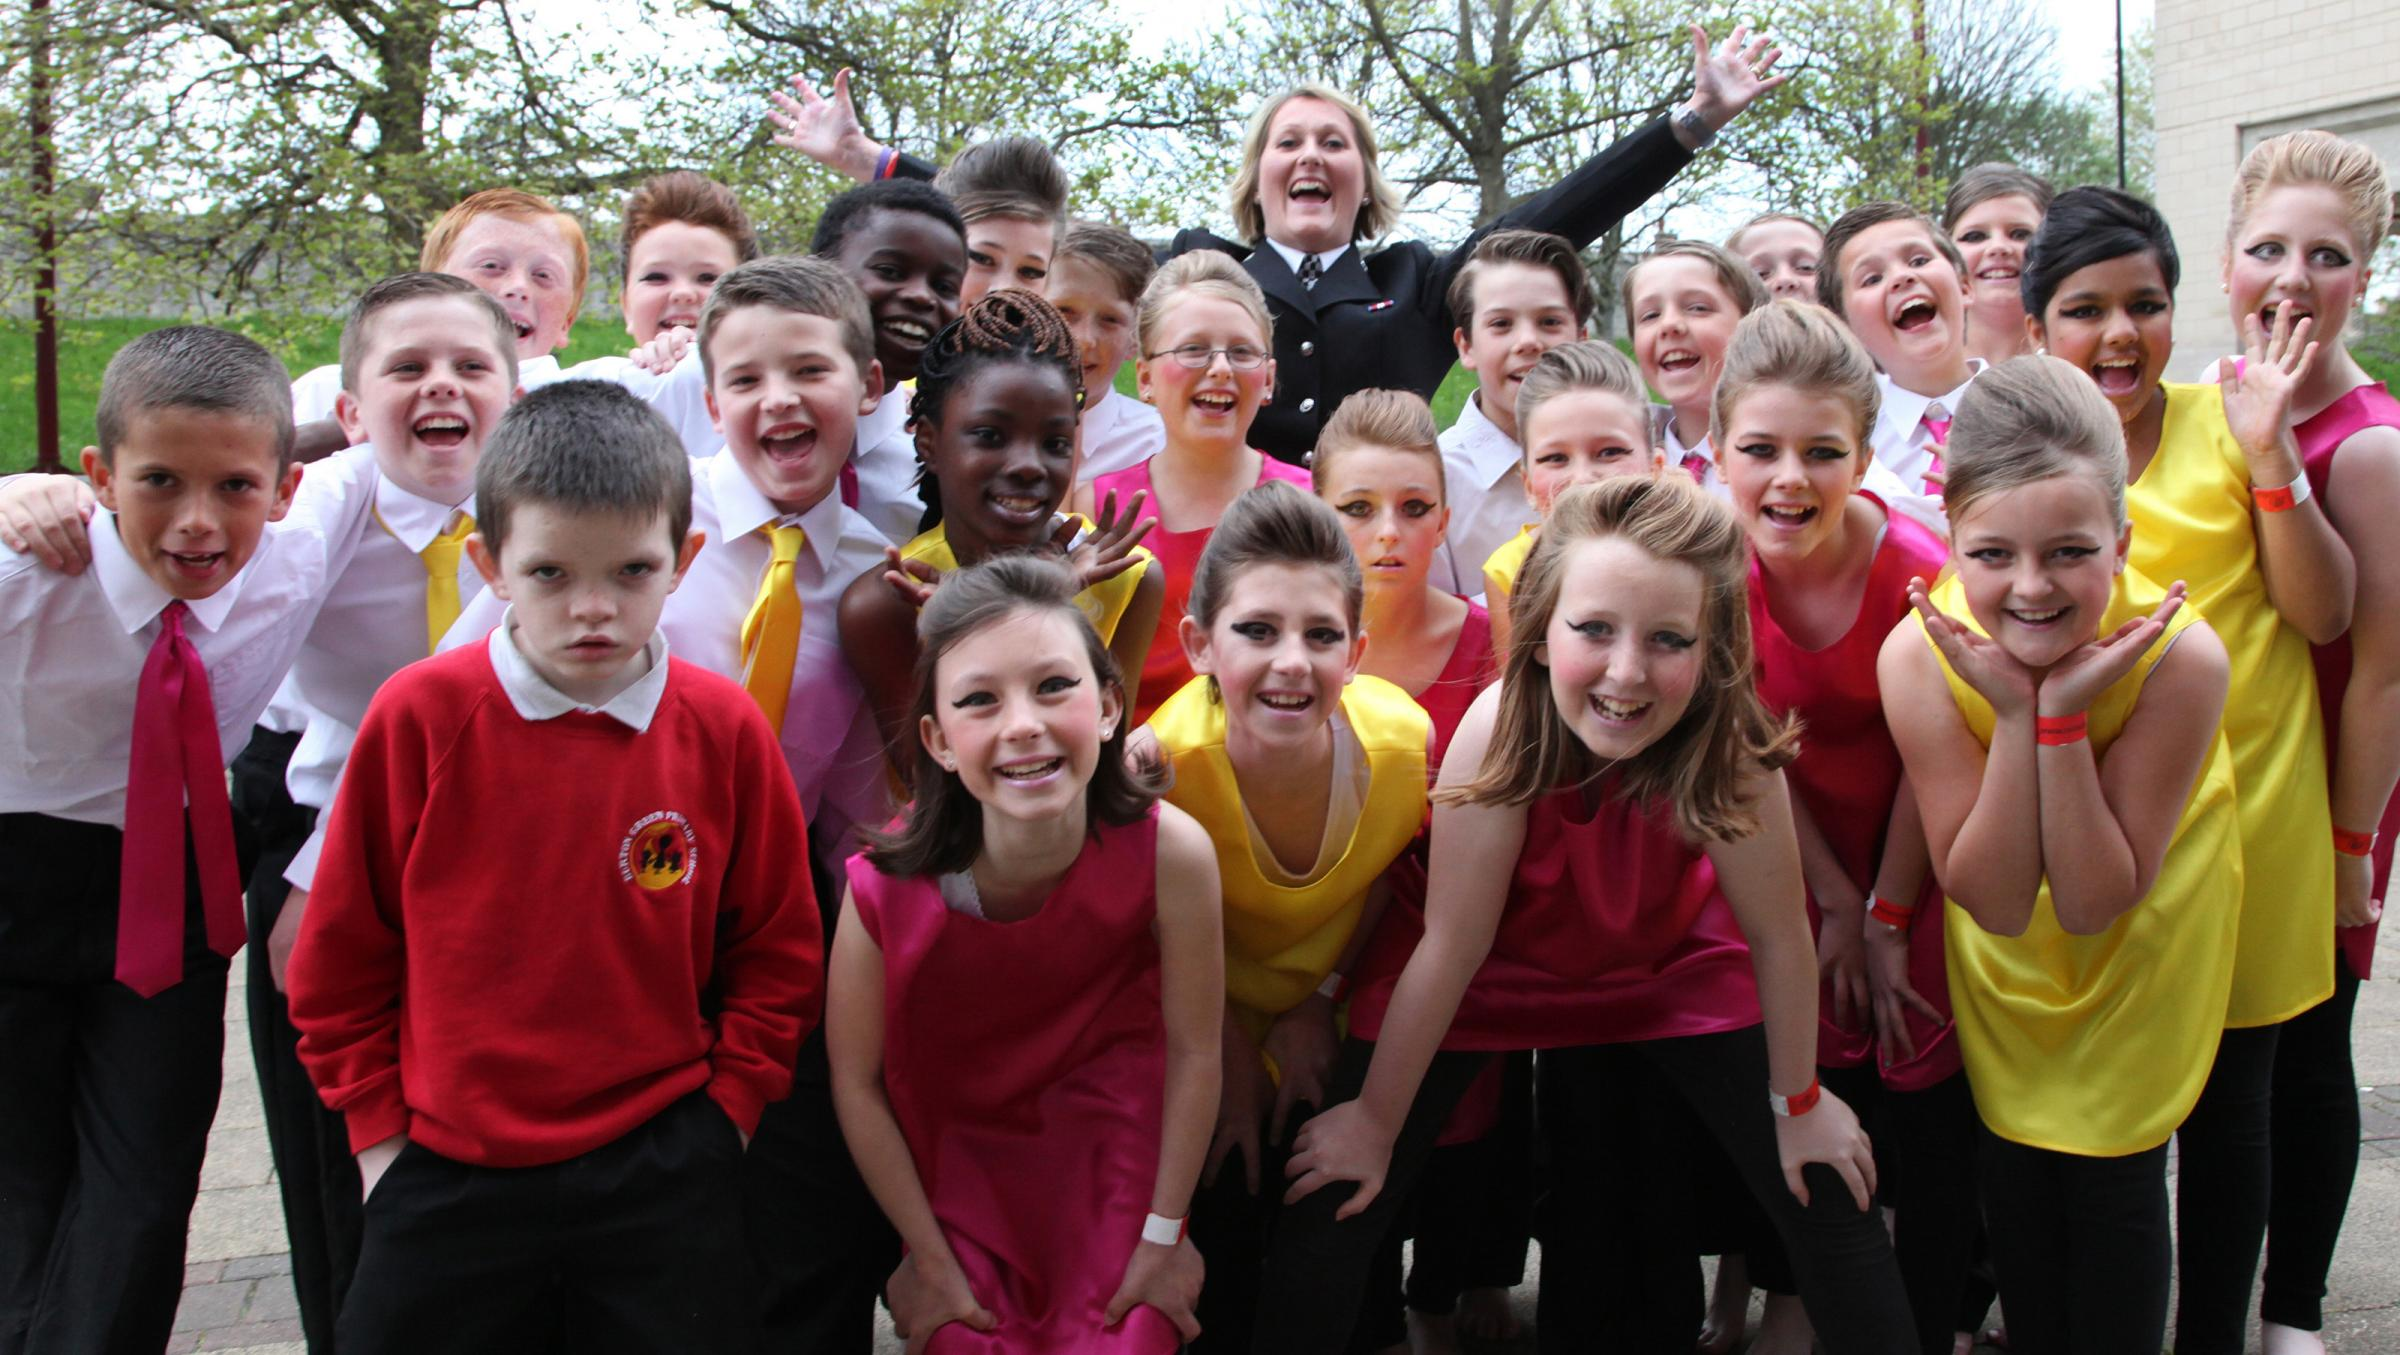 PC Suzanne Asquith, Police Youth Engagement Officer, with children from Burton Green Primary School who took part in Rock Challenge, a national dance competition sponsored by North Yorkshire Police, at the Barbican